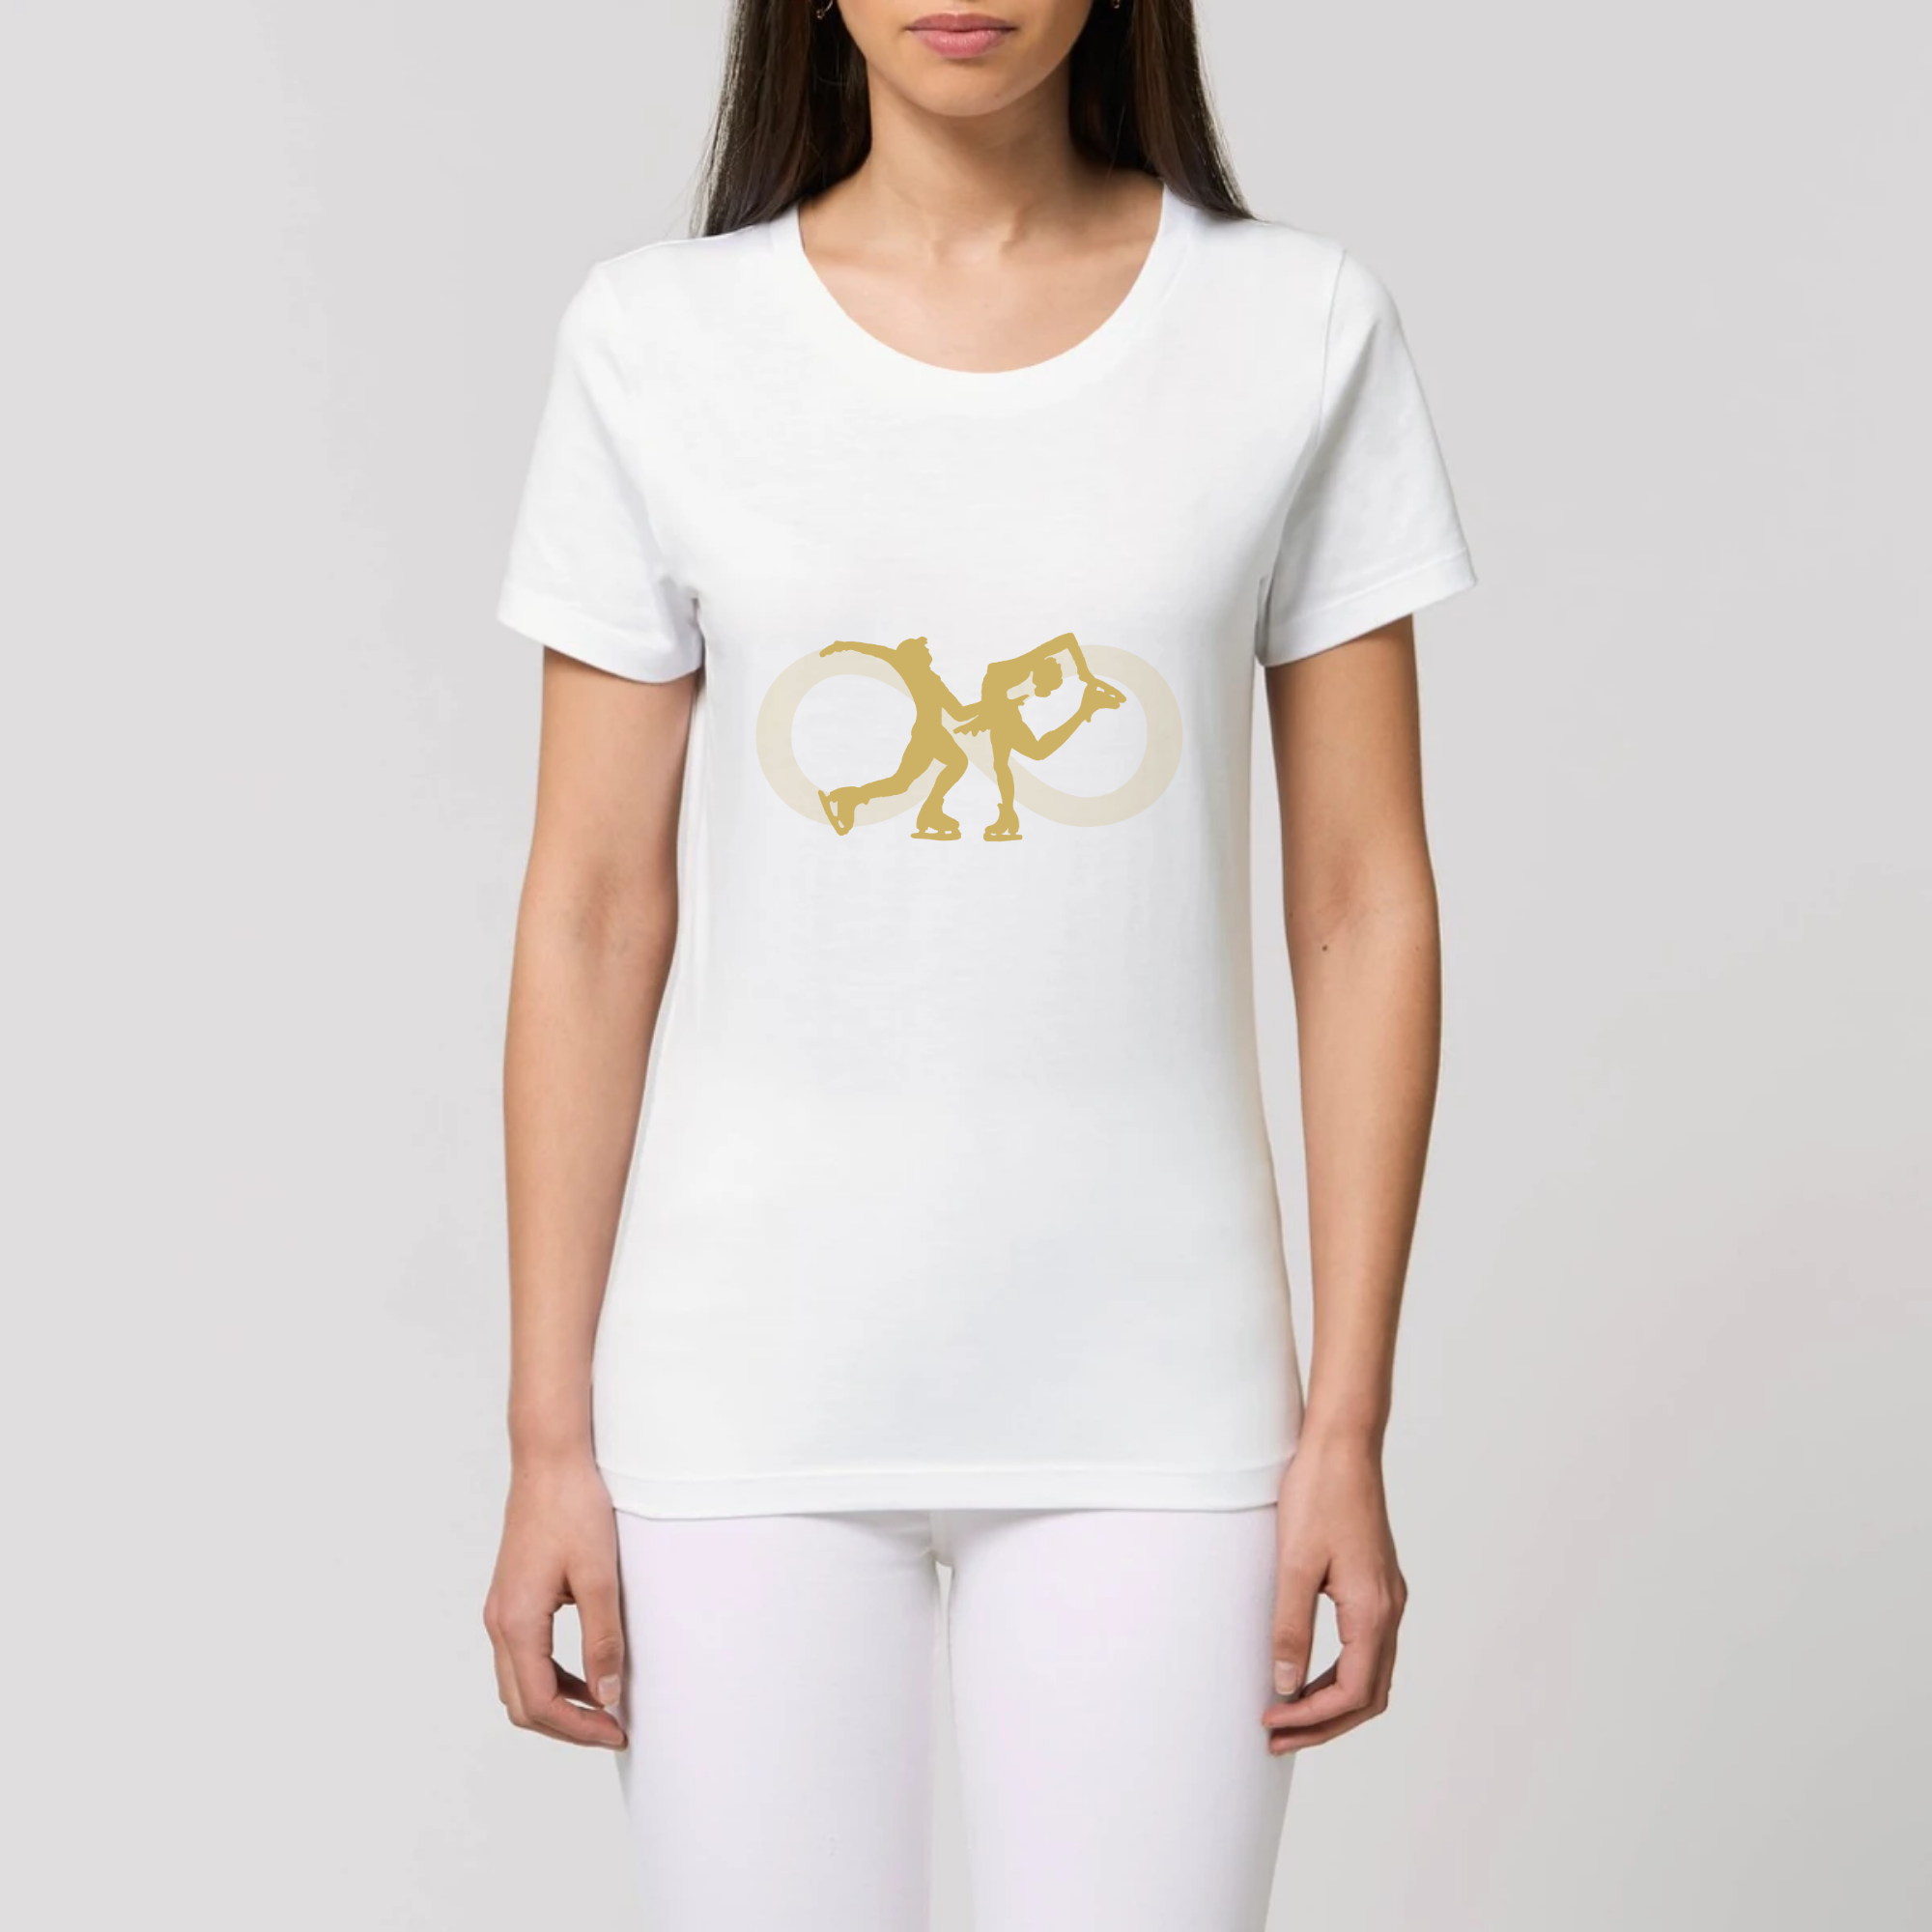 T-SHIRT BIO - COUPLE GOLD